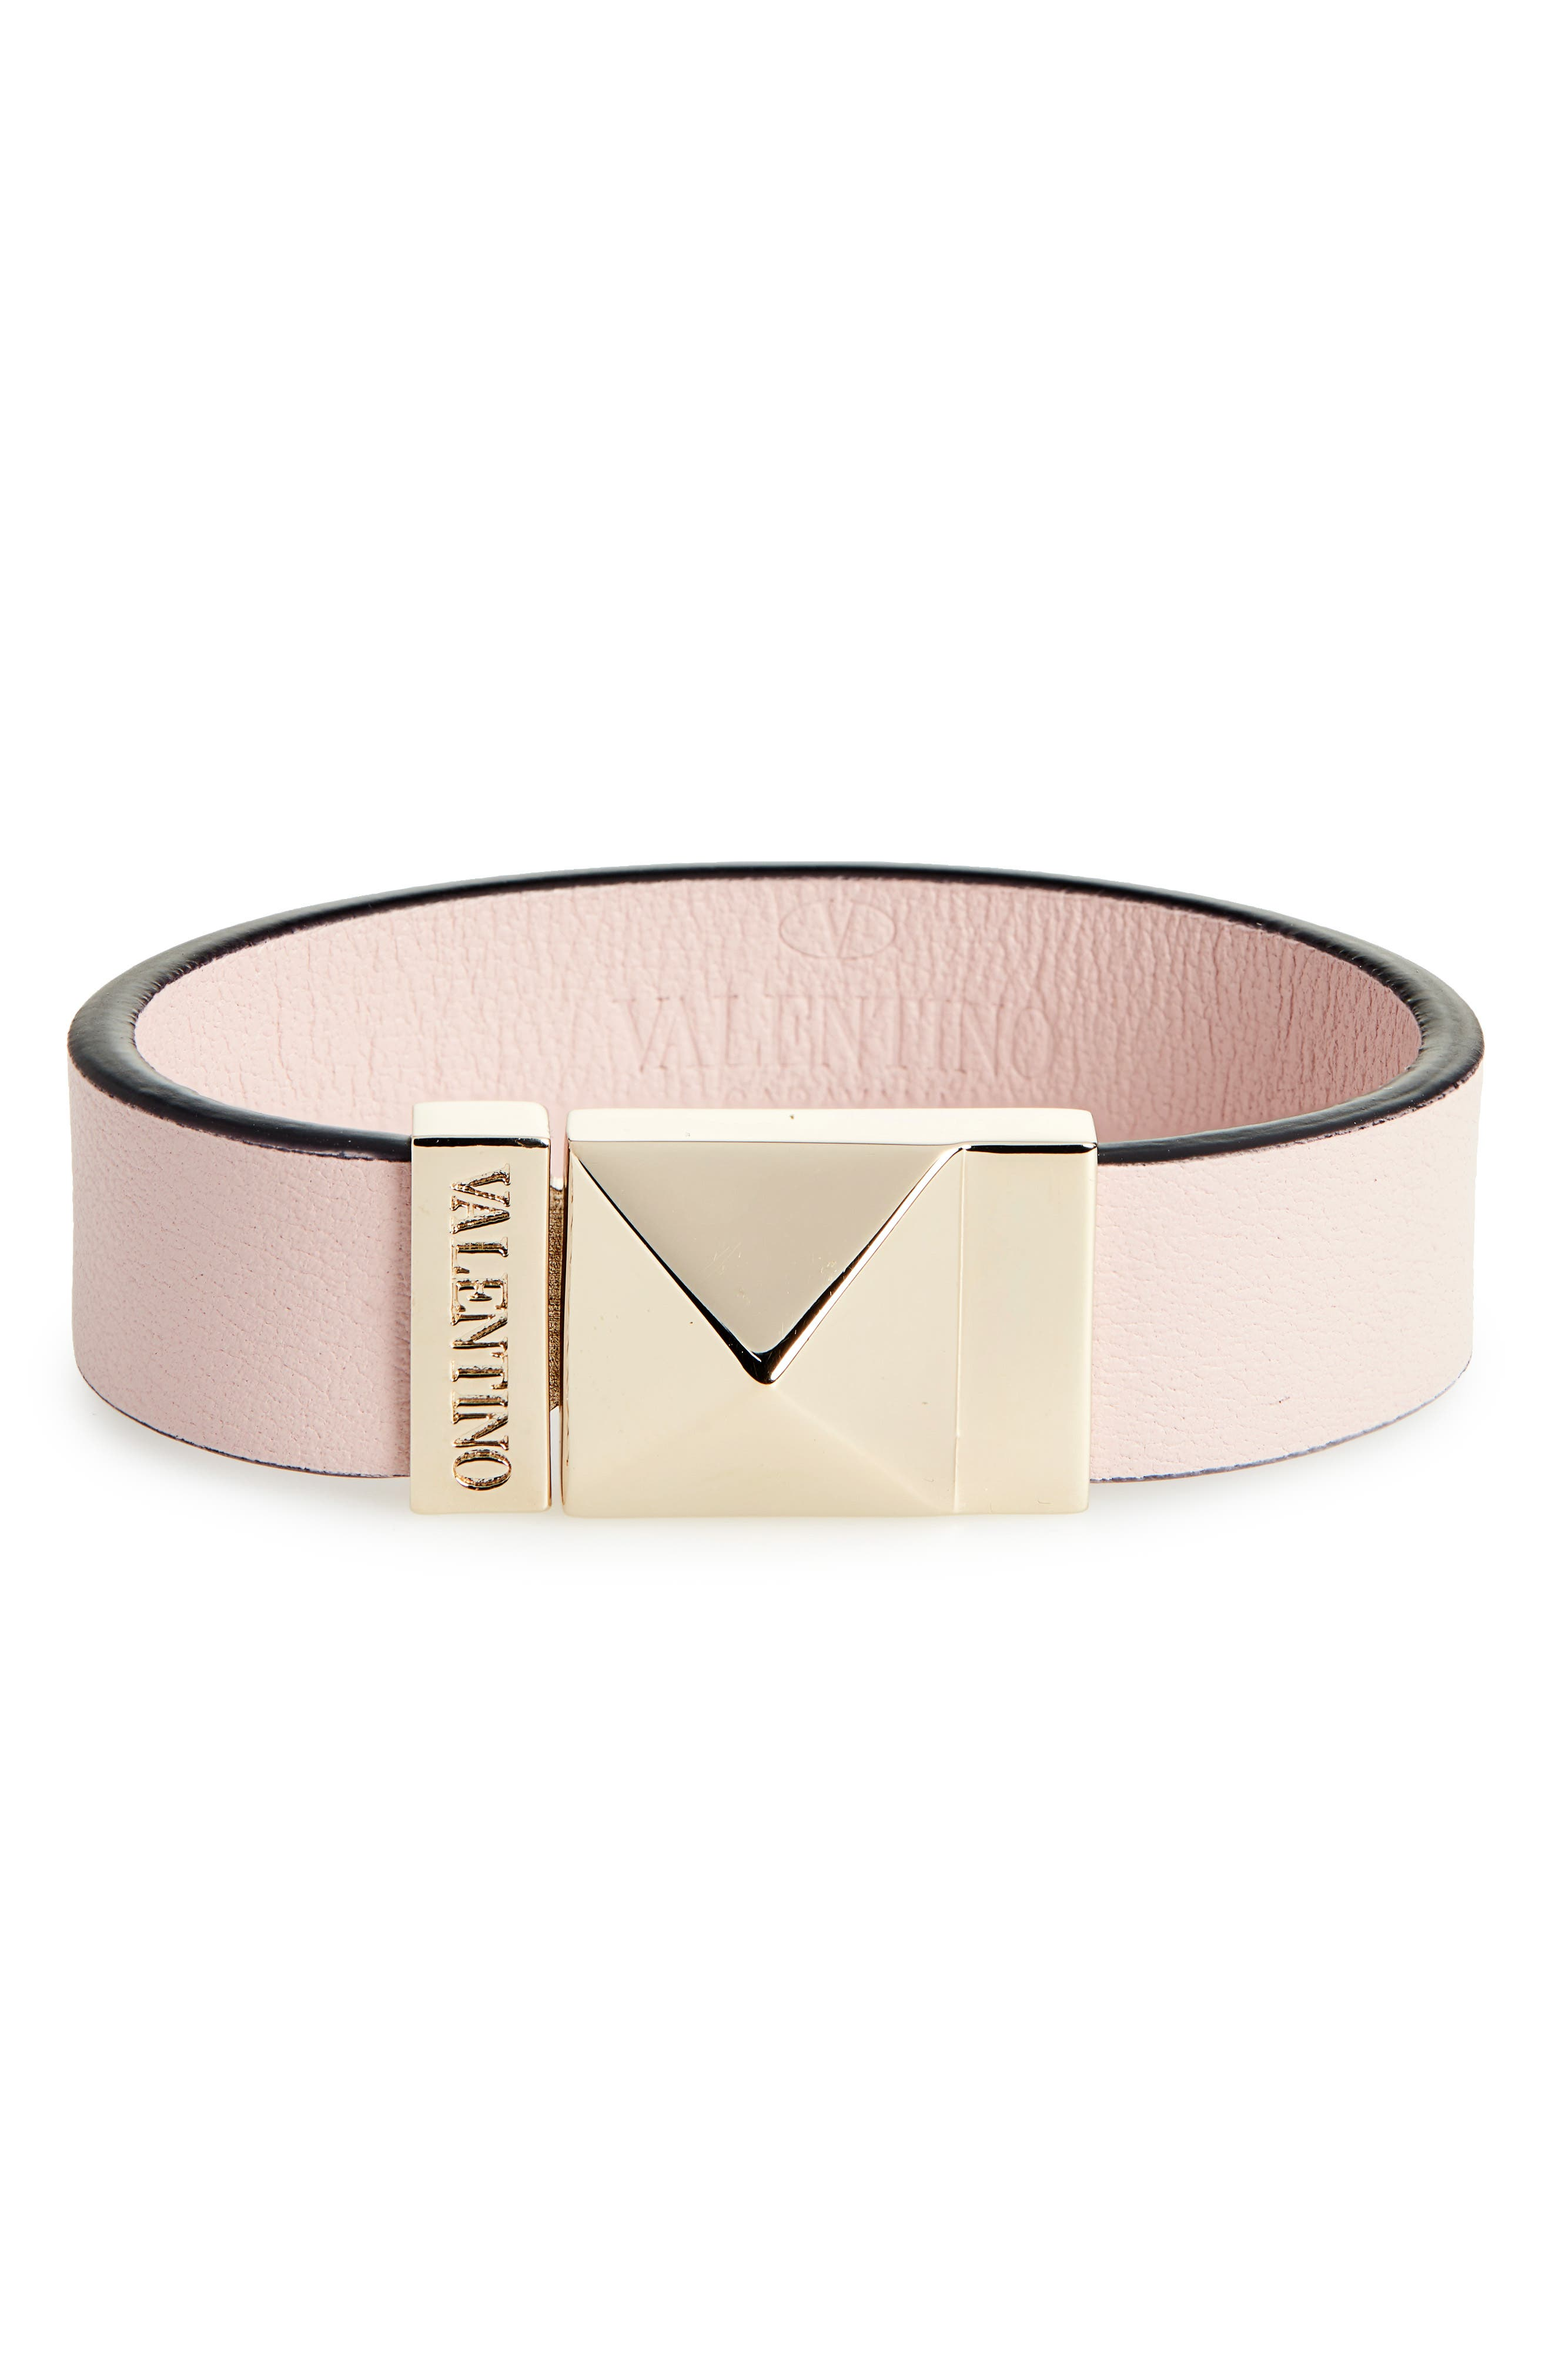 VALENTINO Small Lock Leather Cuff Bracelet, Main, color, WATER ROSE